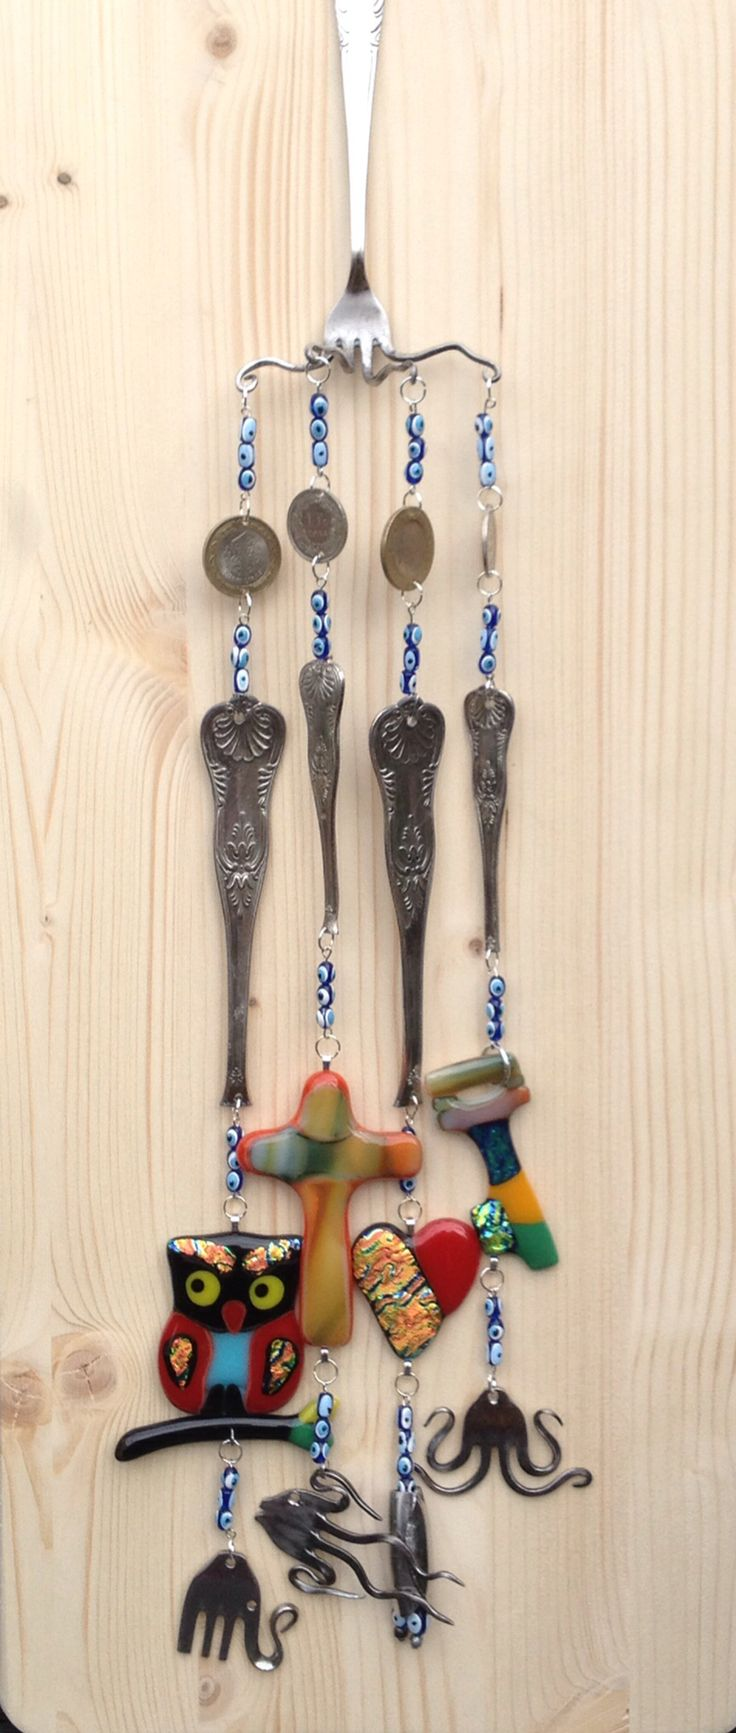 479 Best Images About Silverware Amp Kitchen Windchimes On